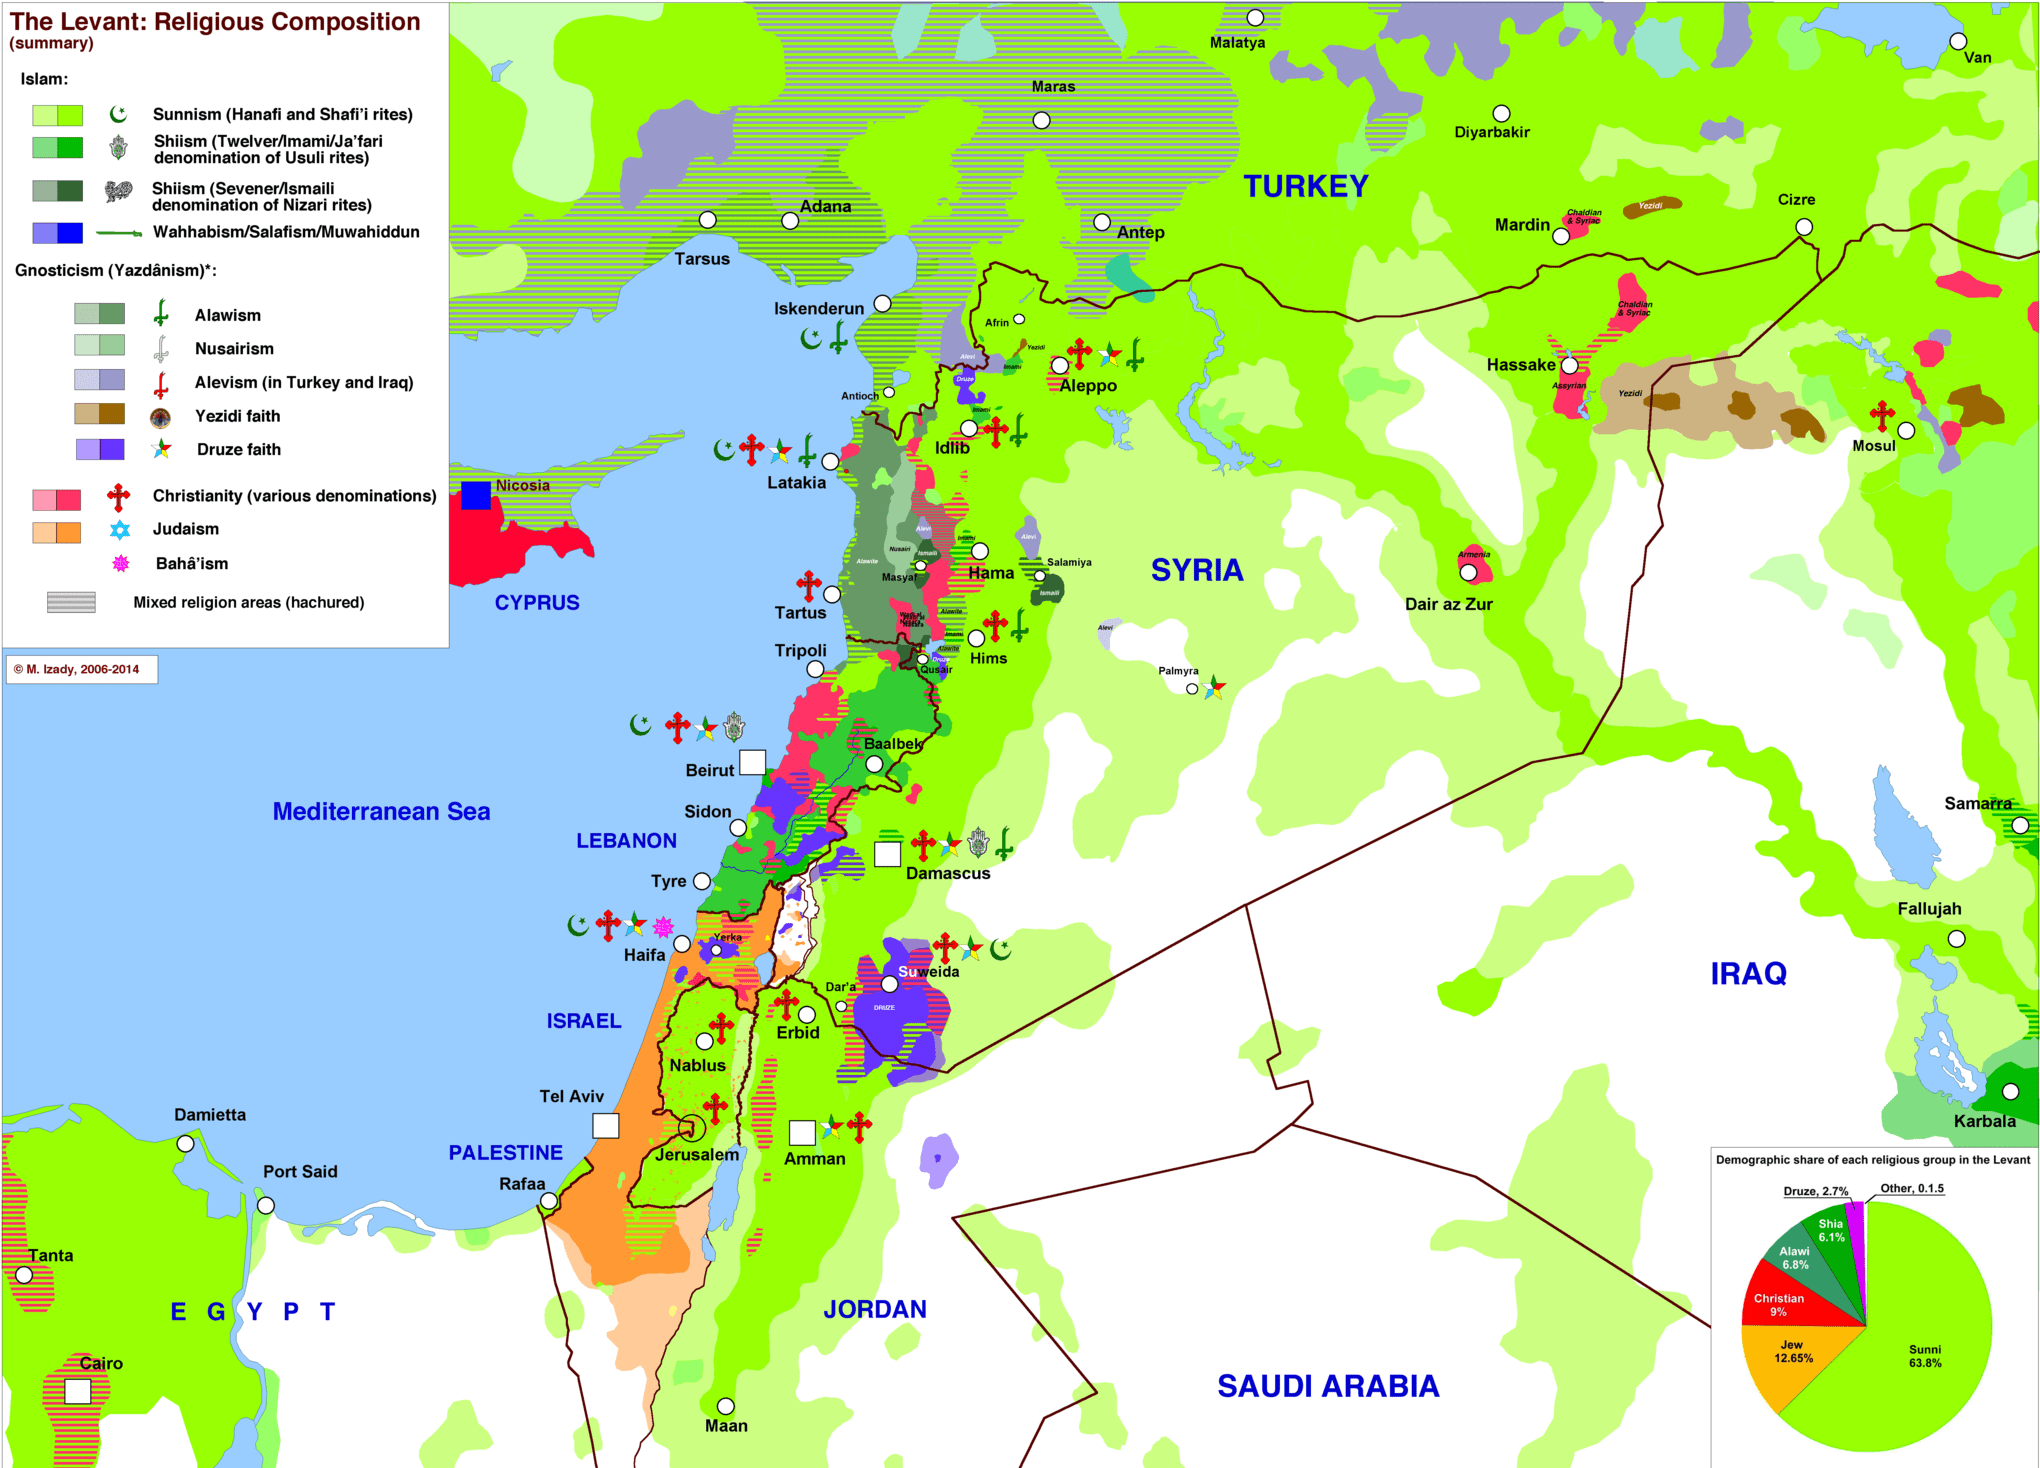 Syria's religious and ethnic diversity